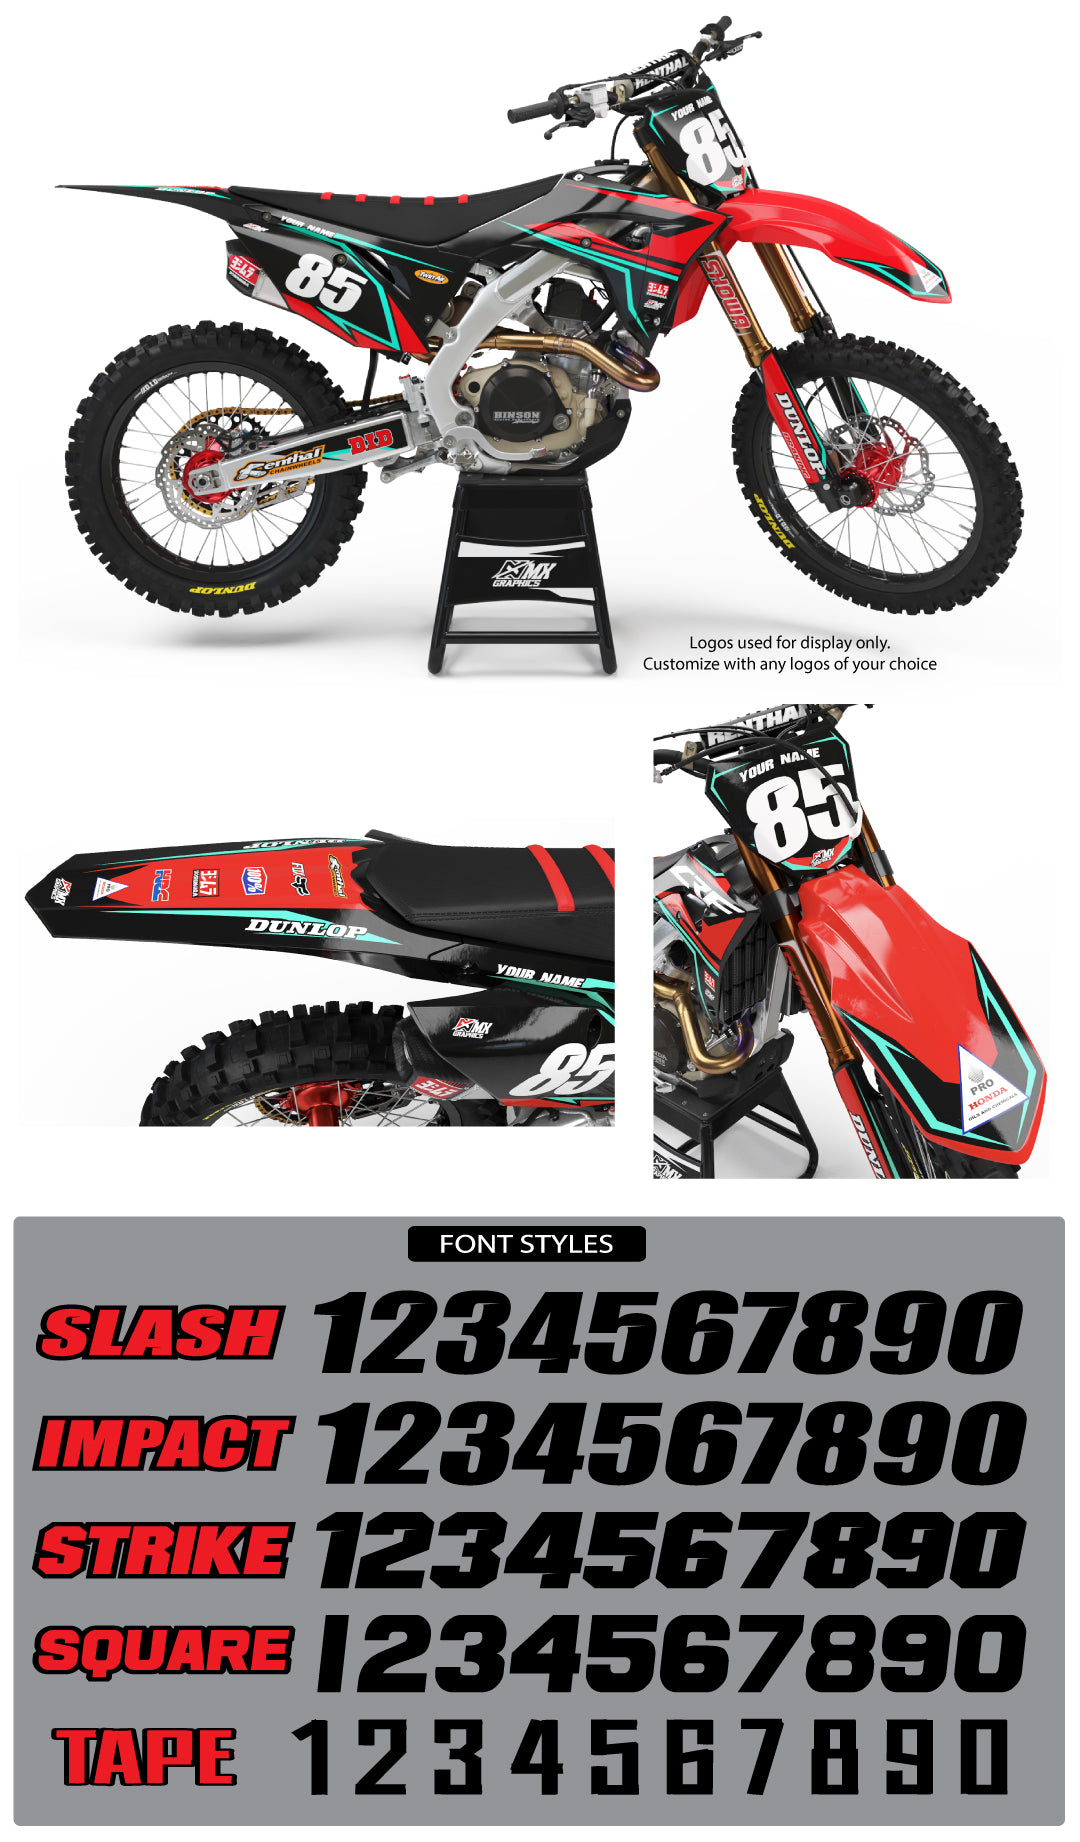 MX19 Graphic Kit for Honda's